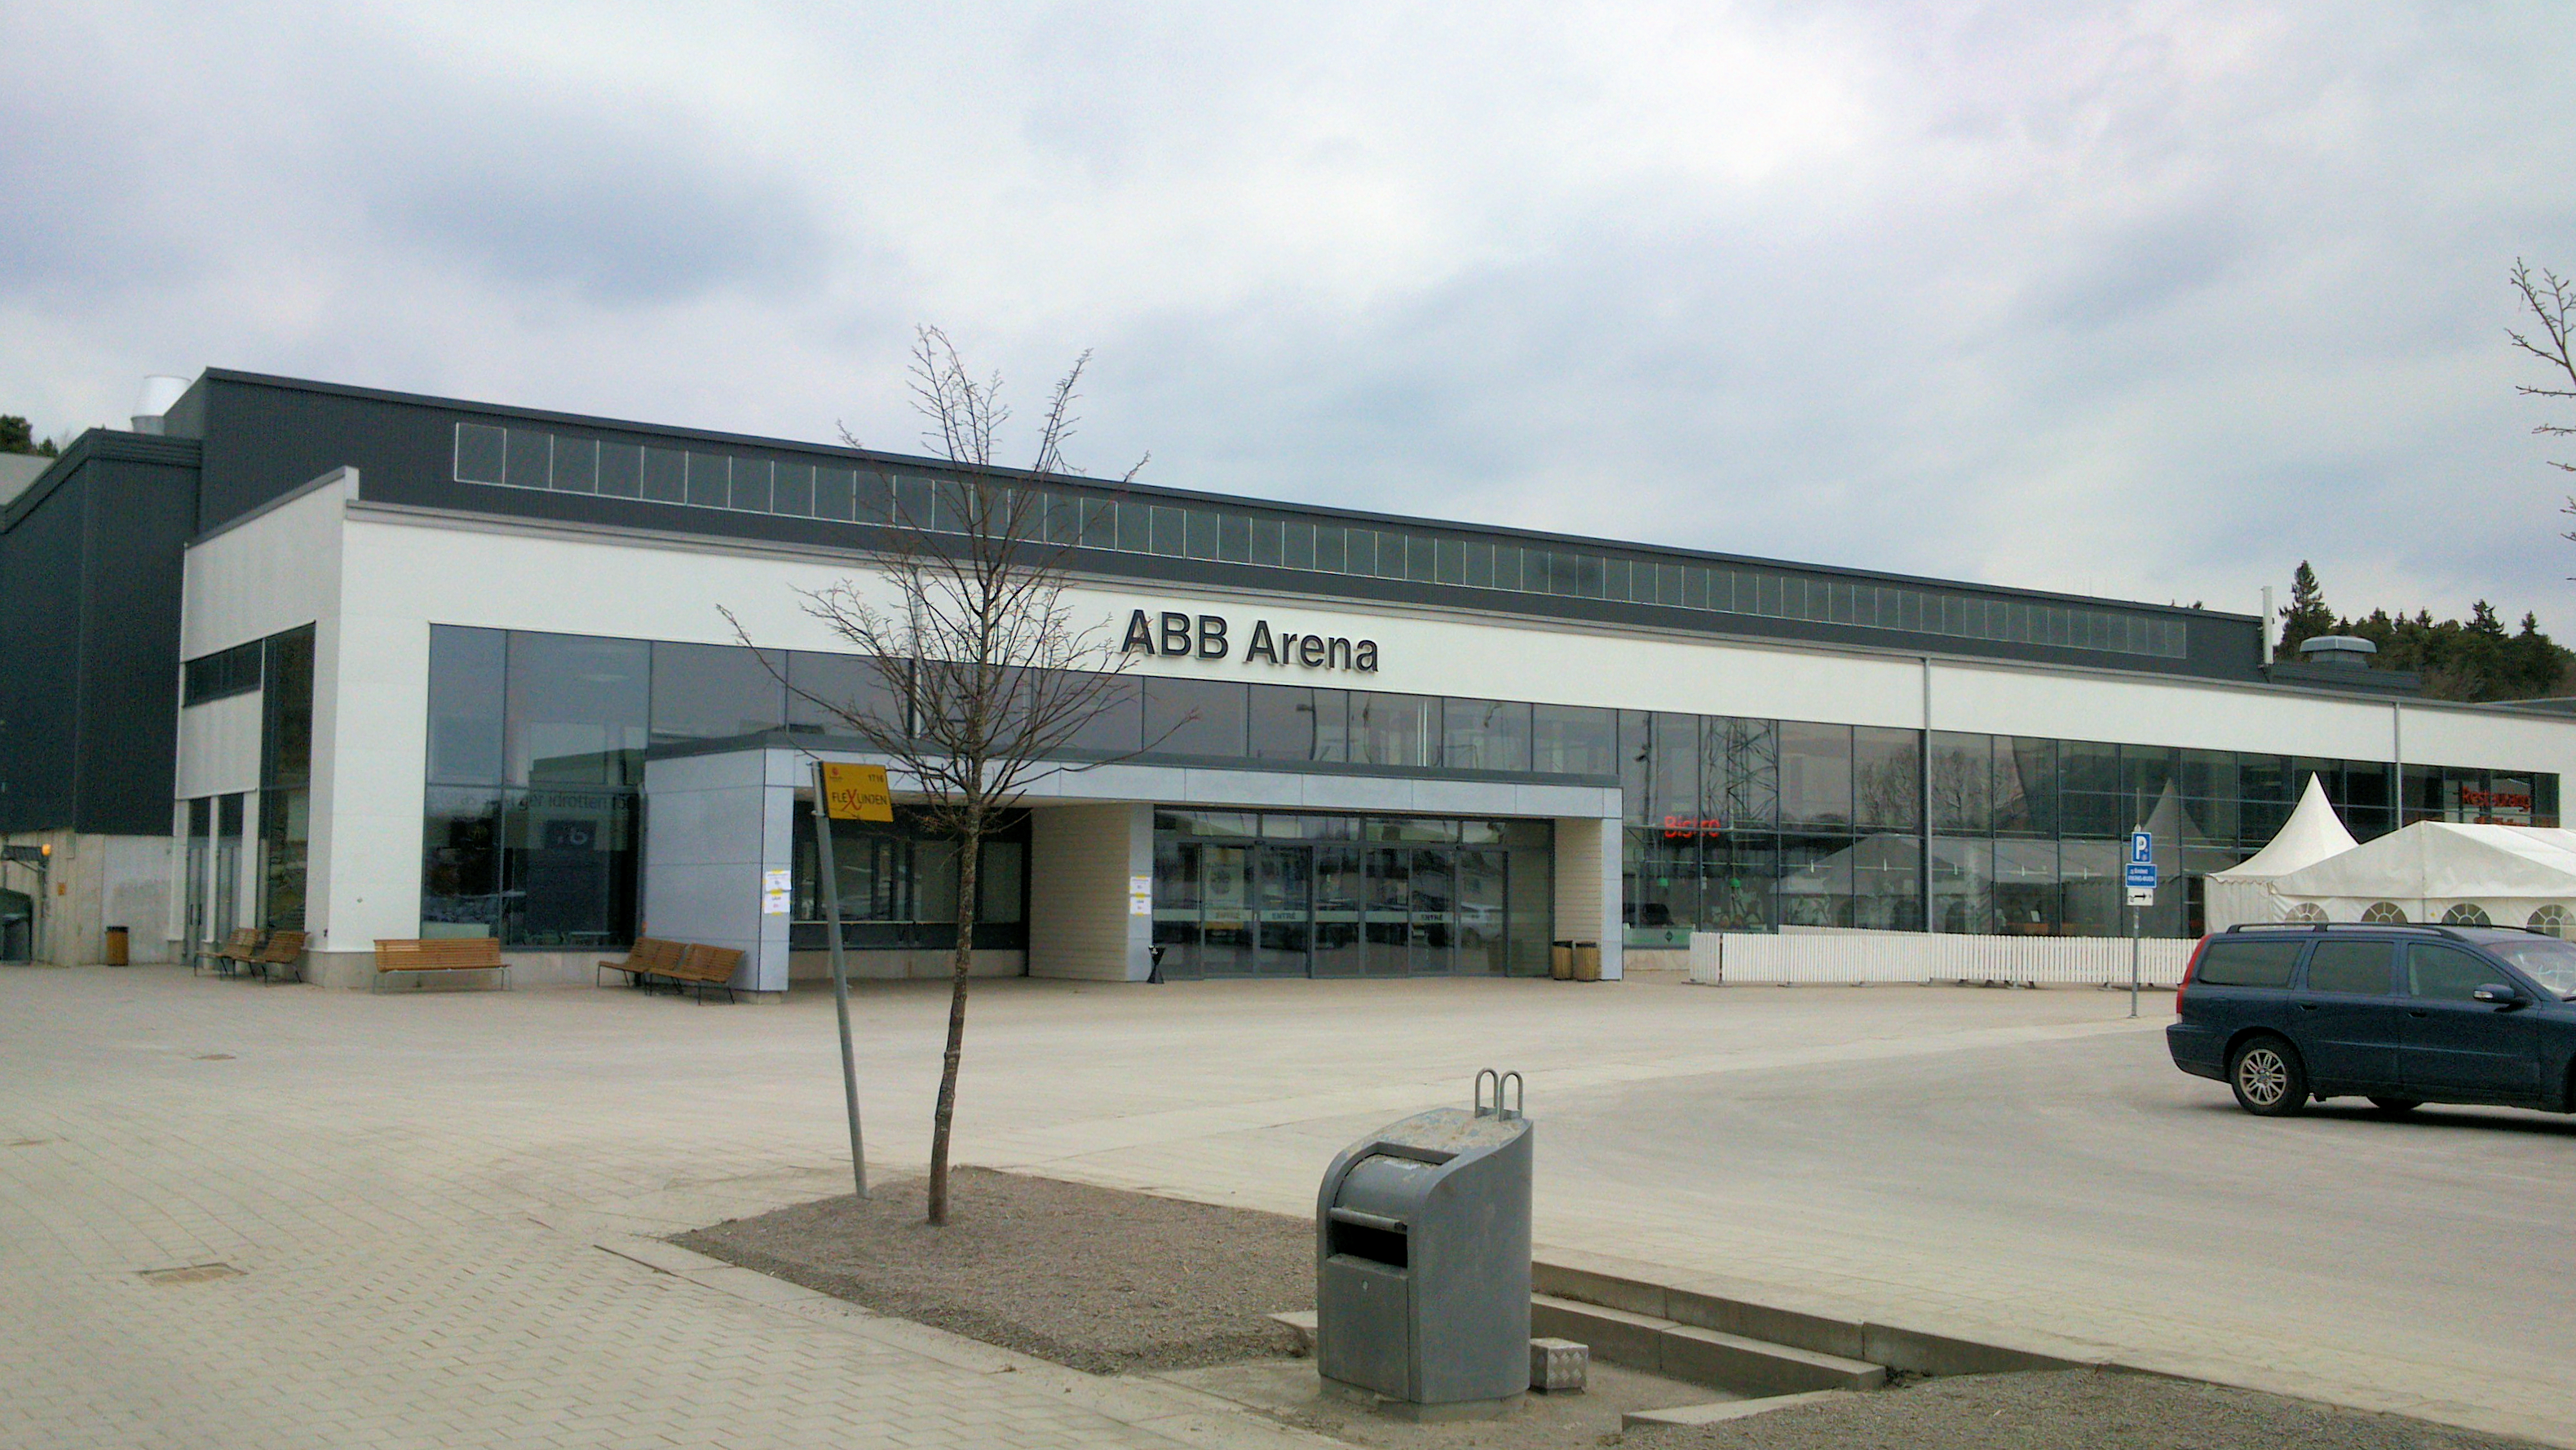 File:Abb arena nord vasteras 2013-05-04 I.png - Wikimedia ...